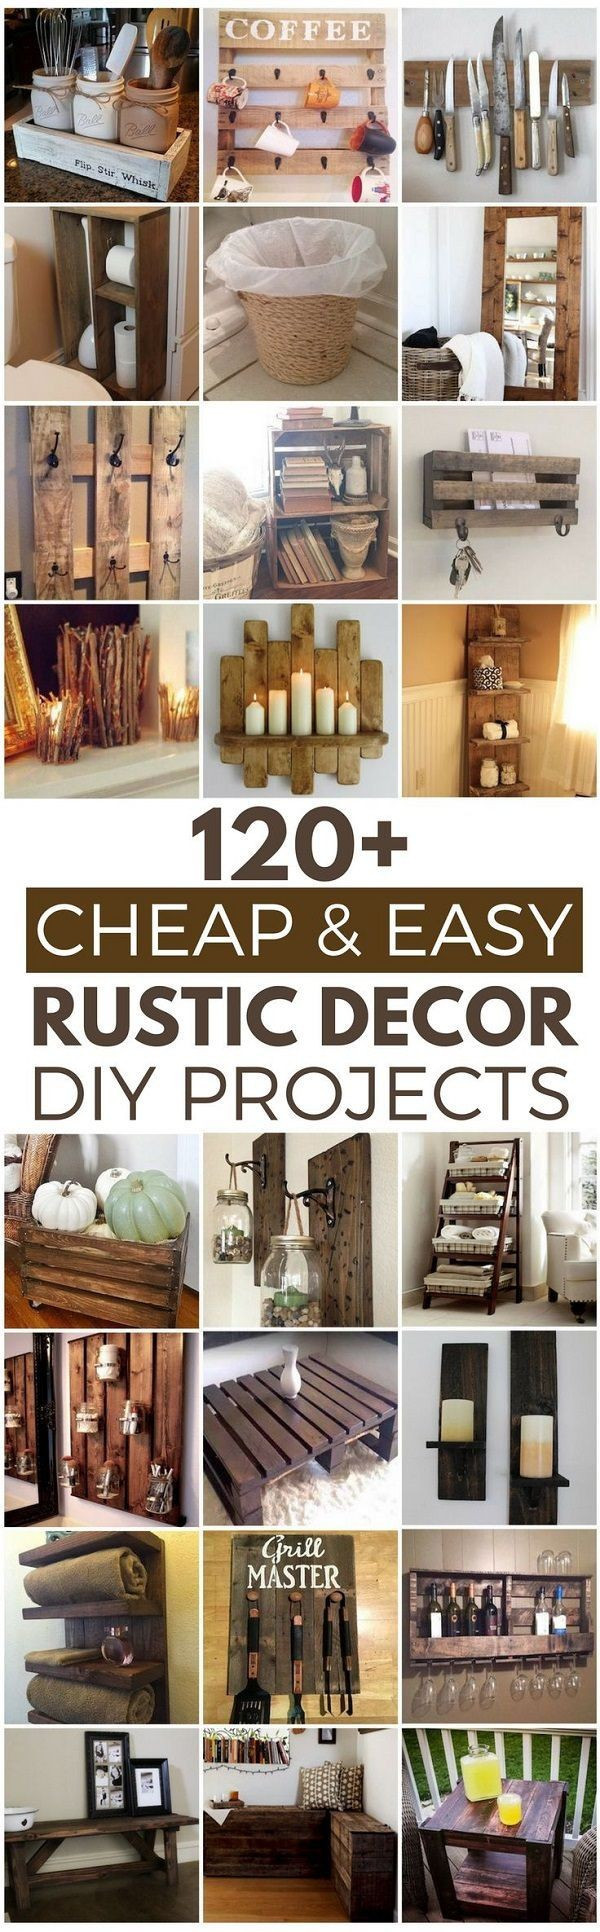 wood vase filler of www pinterest home decor lovely easy home decorating unique 15 cheap regarding www pinterest home decor new easy home decorating unique 15 cheap and easy diy vase filler